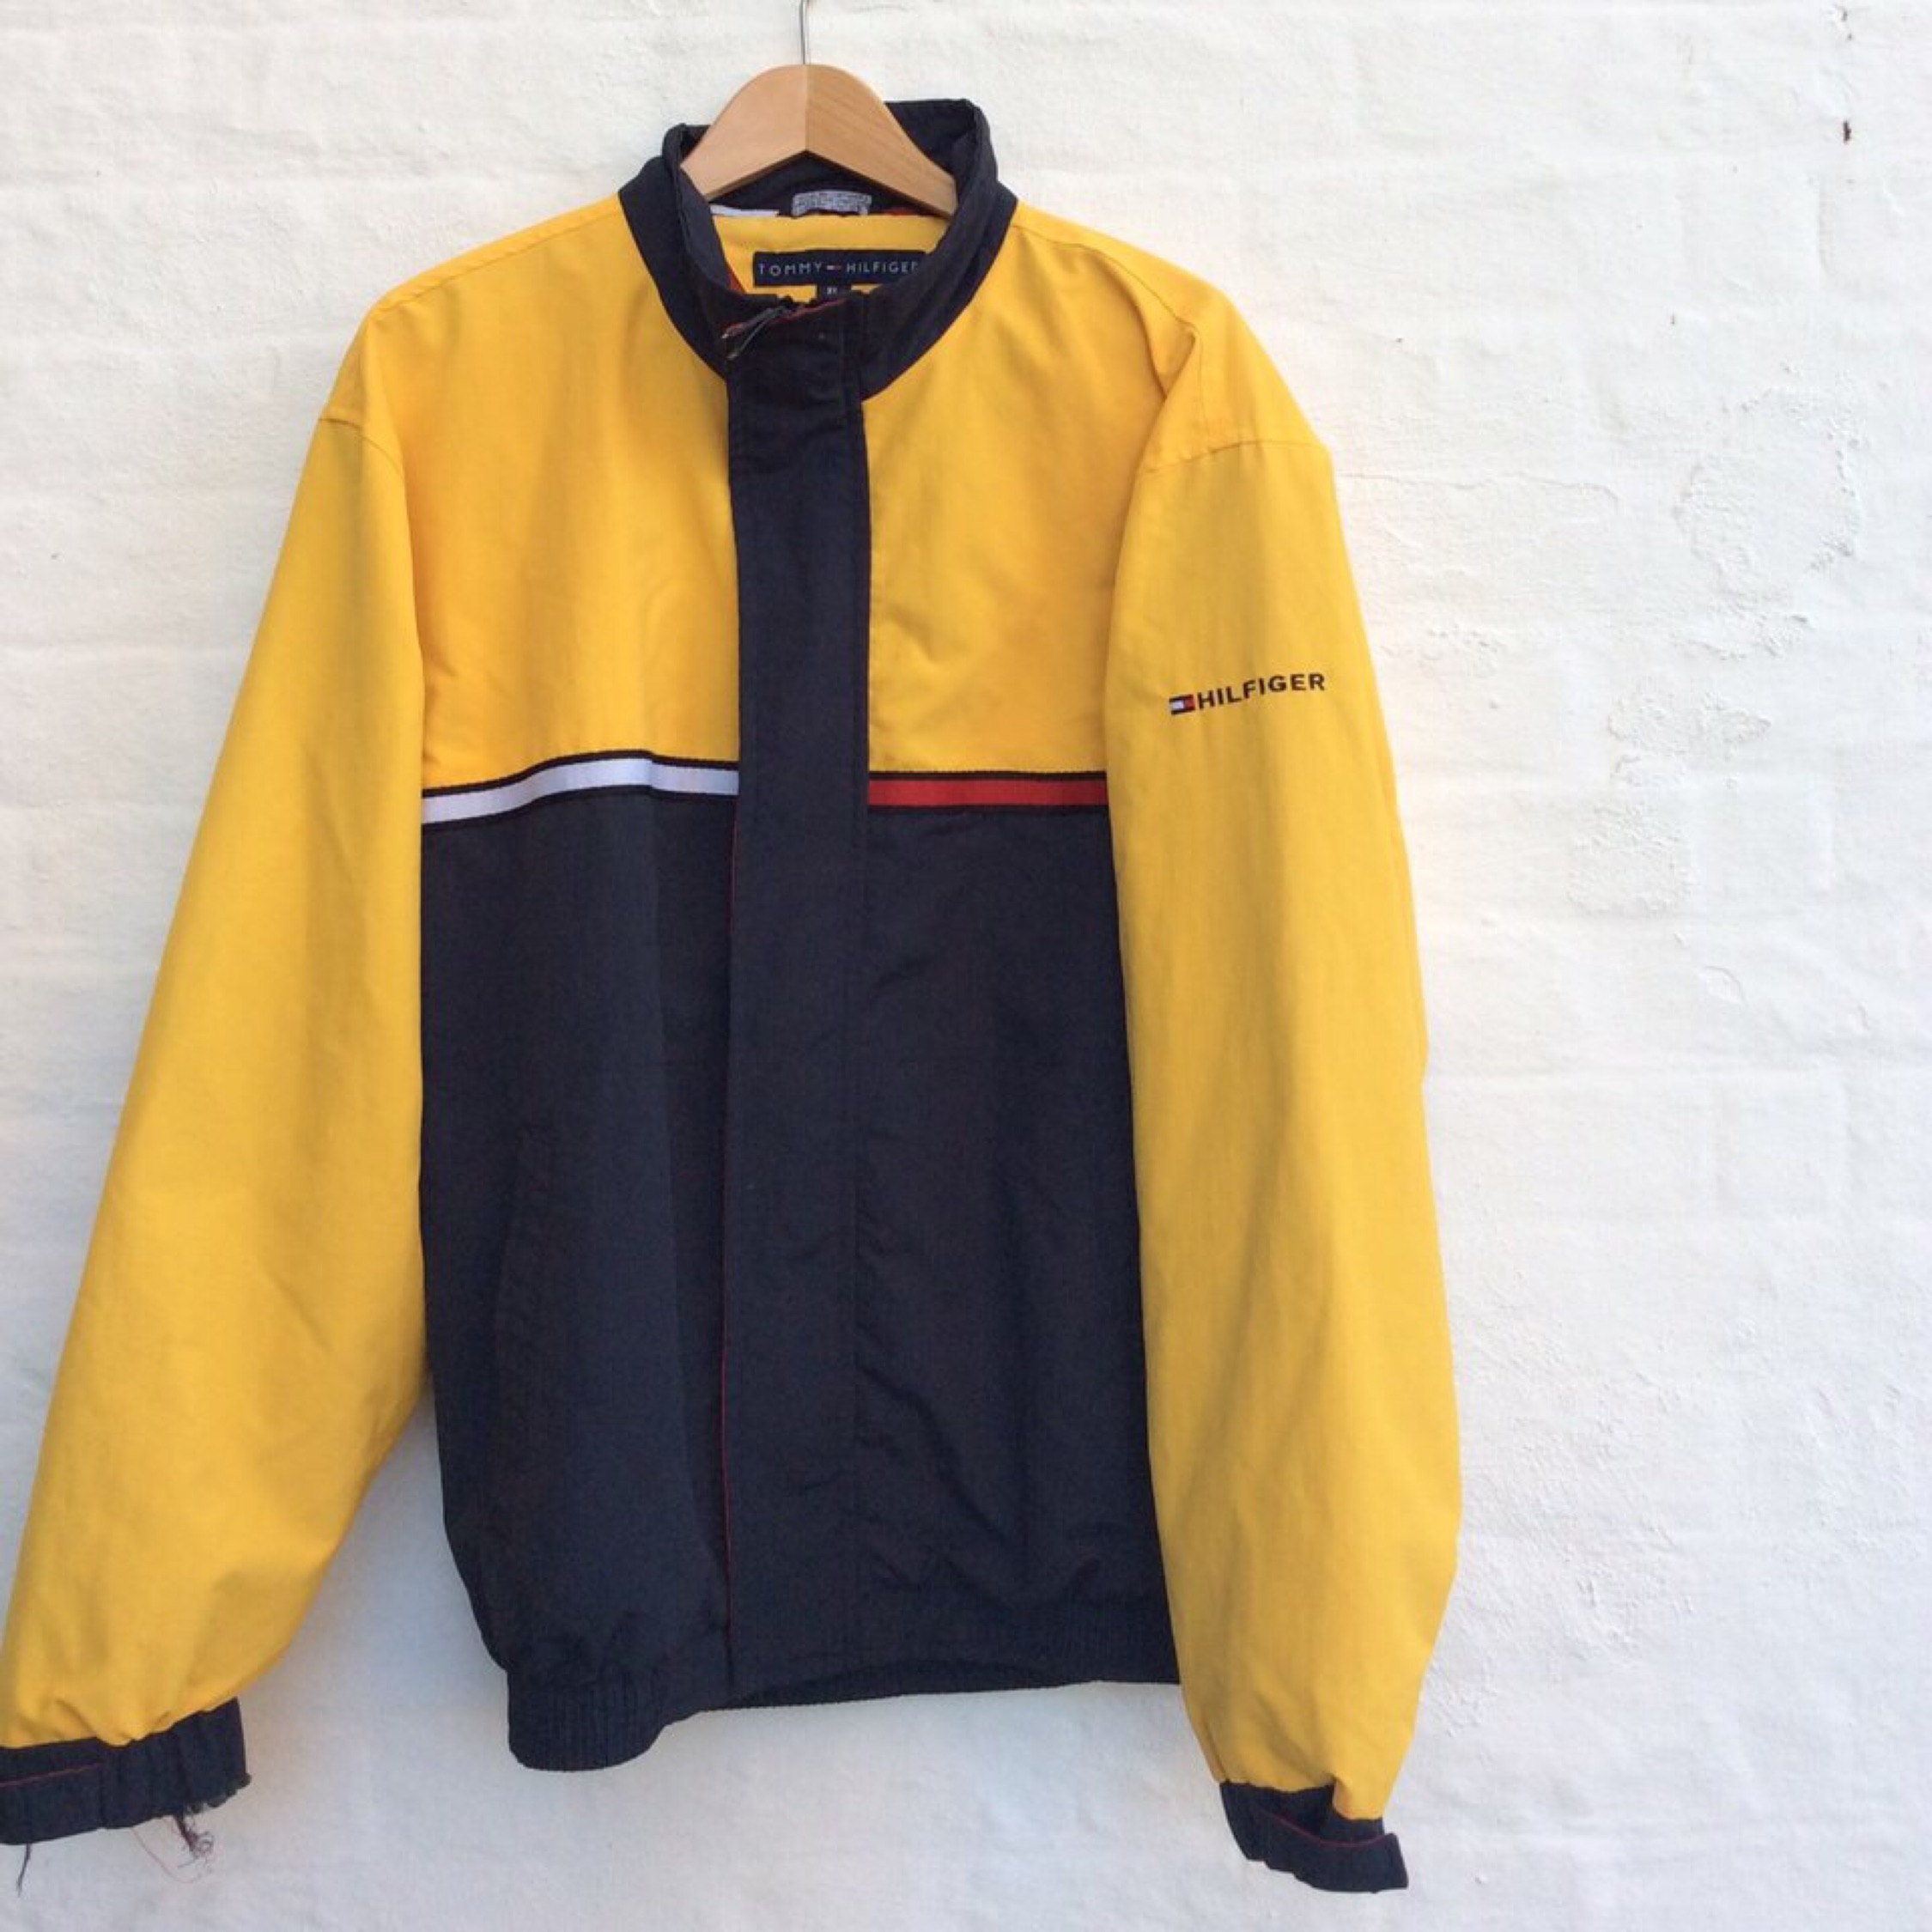 latest hot sale limited quantity Tommy Hilfiger Yellow Jacket